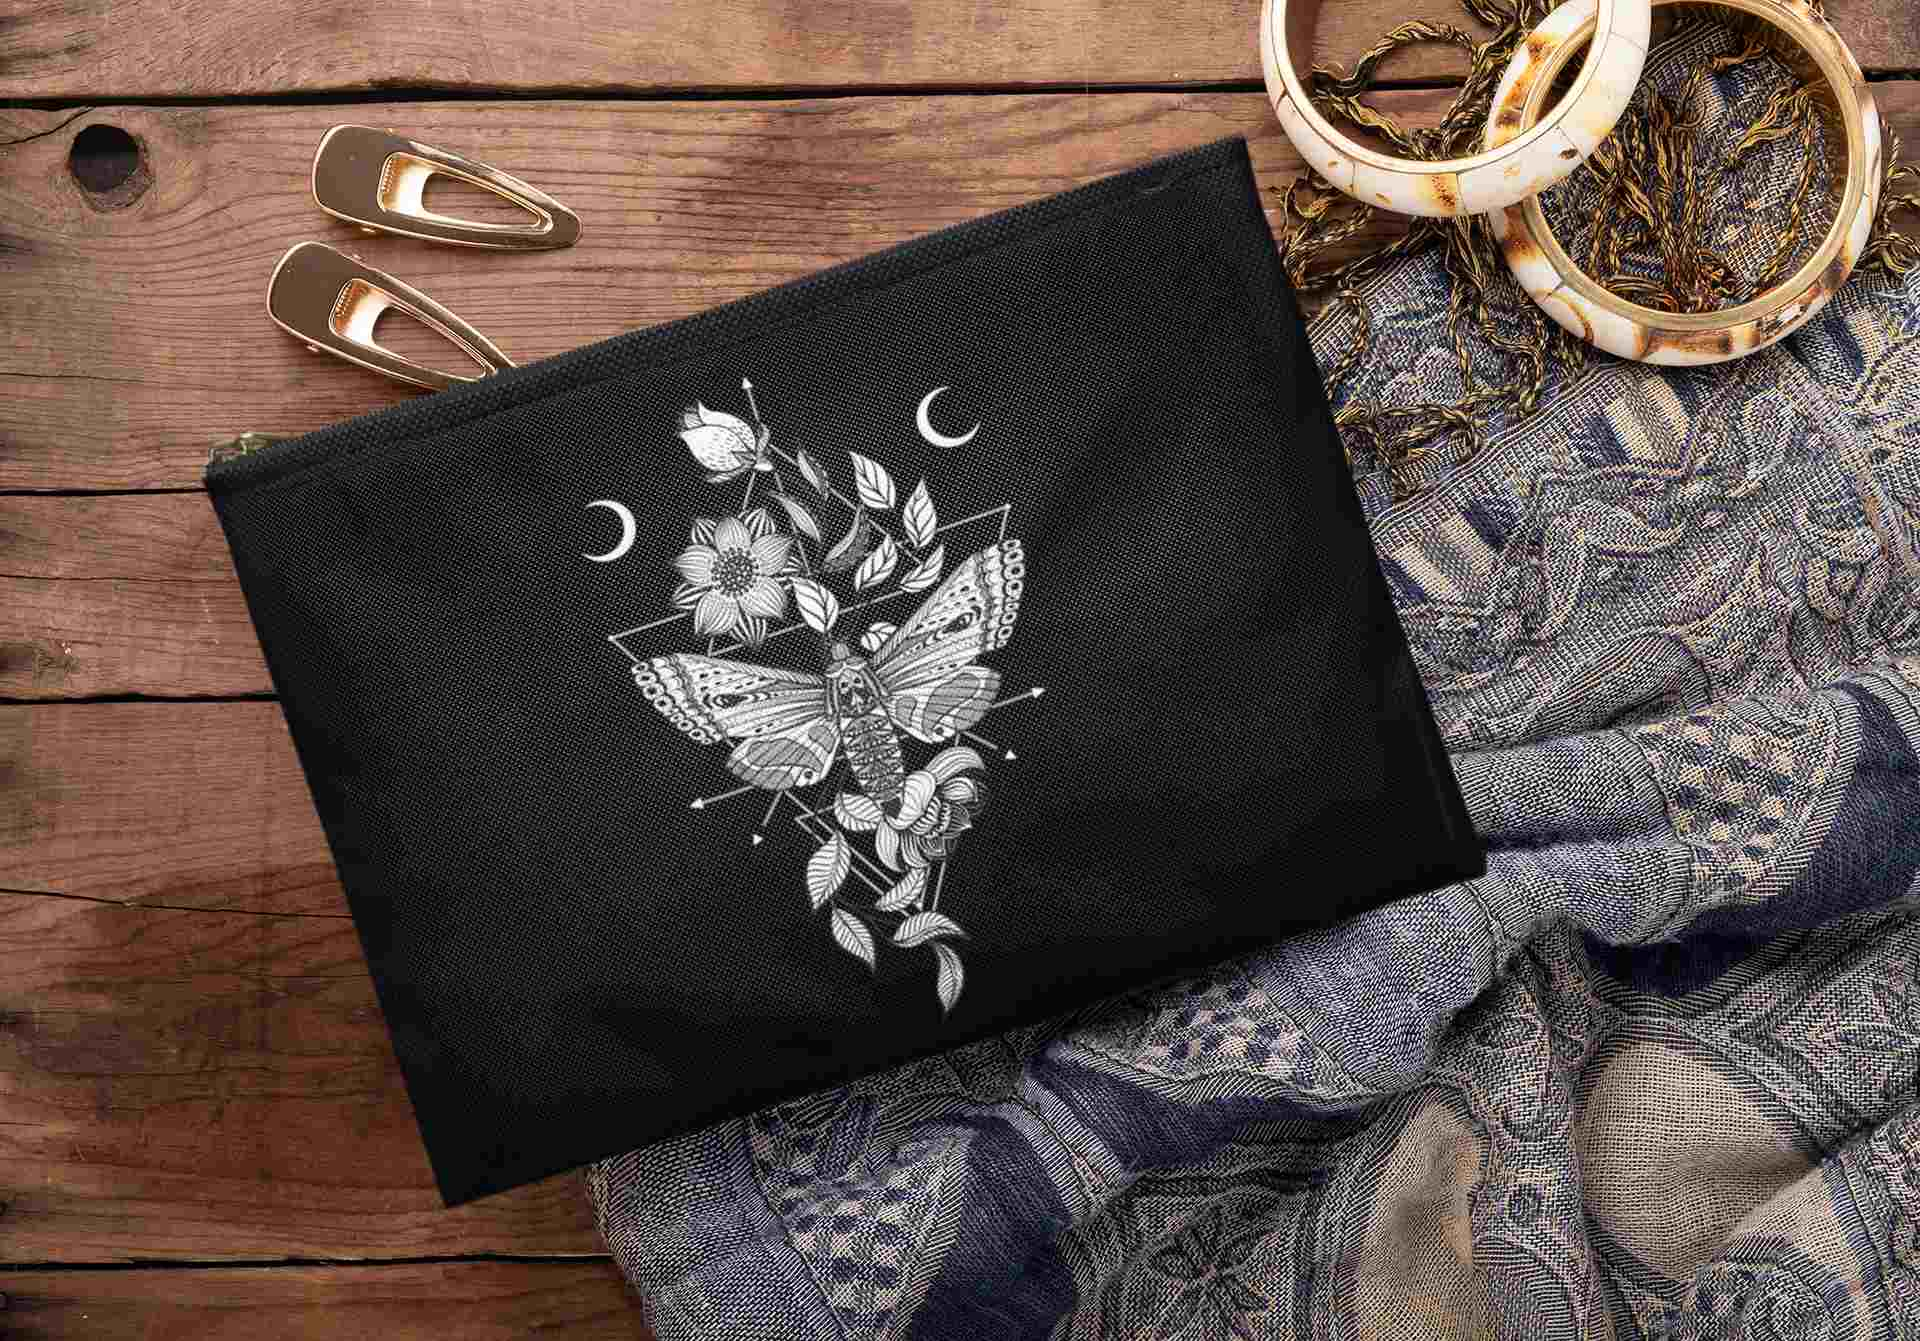 Death Moth tarot pouch. Goth Girl bag. Witch clothing accessories.